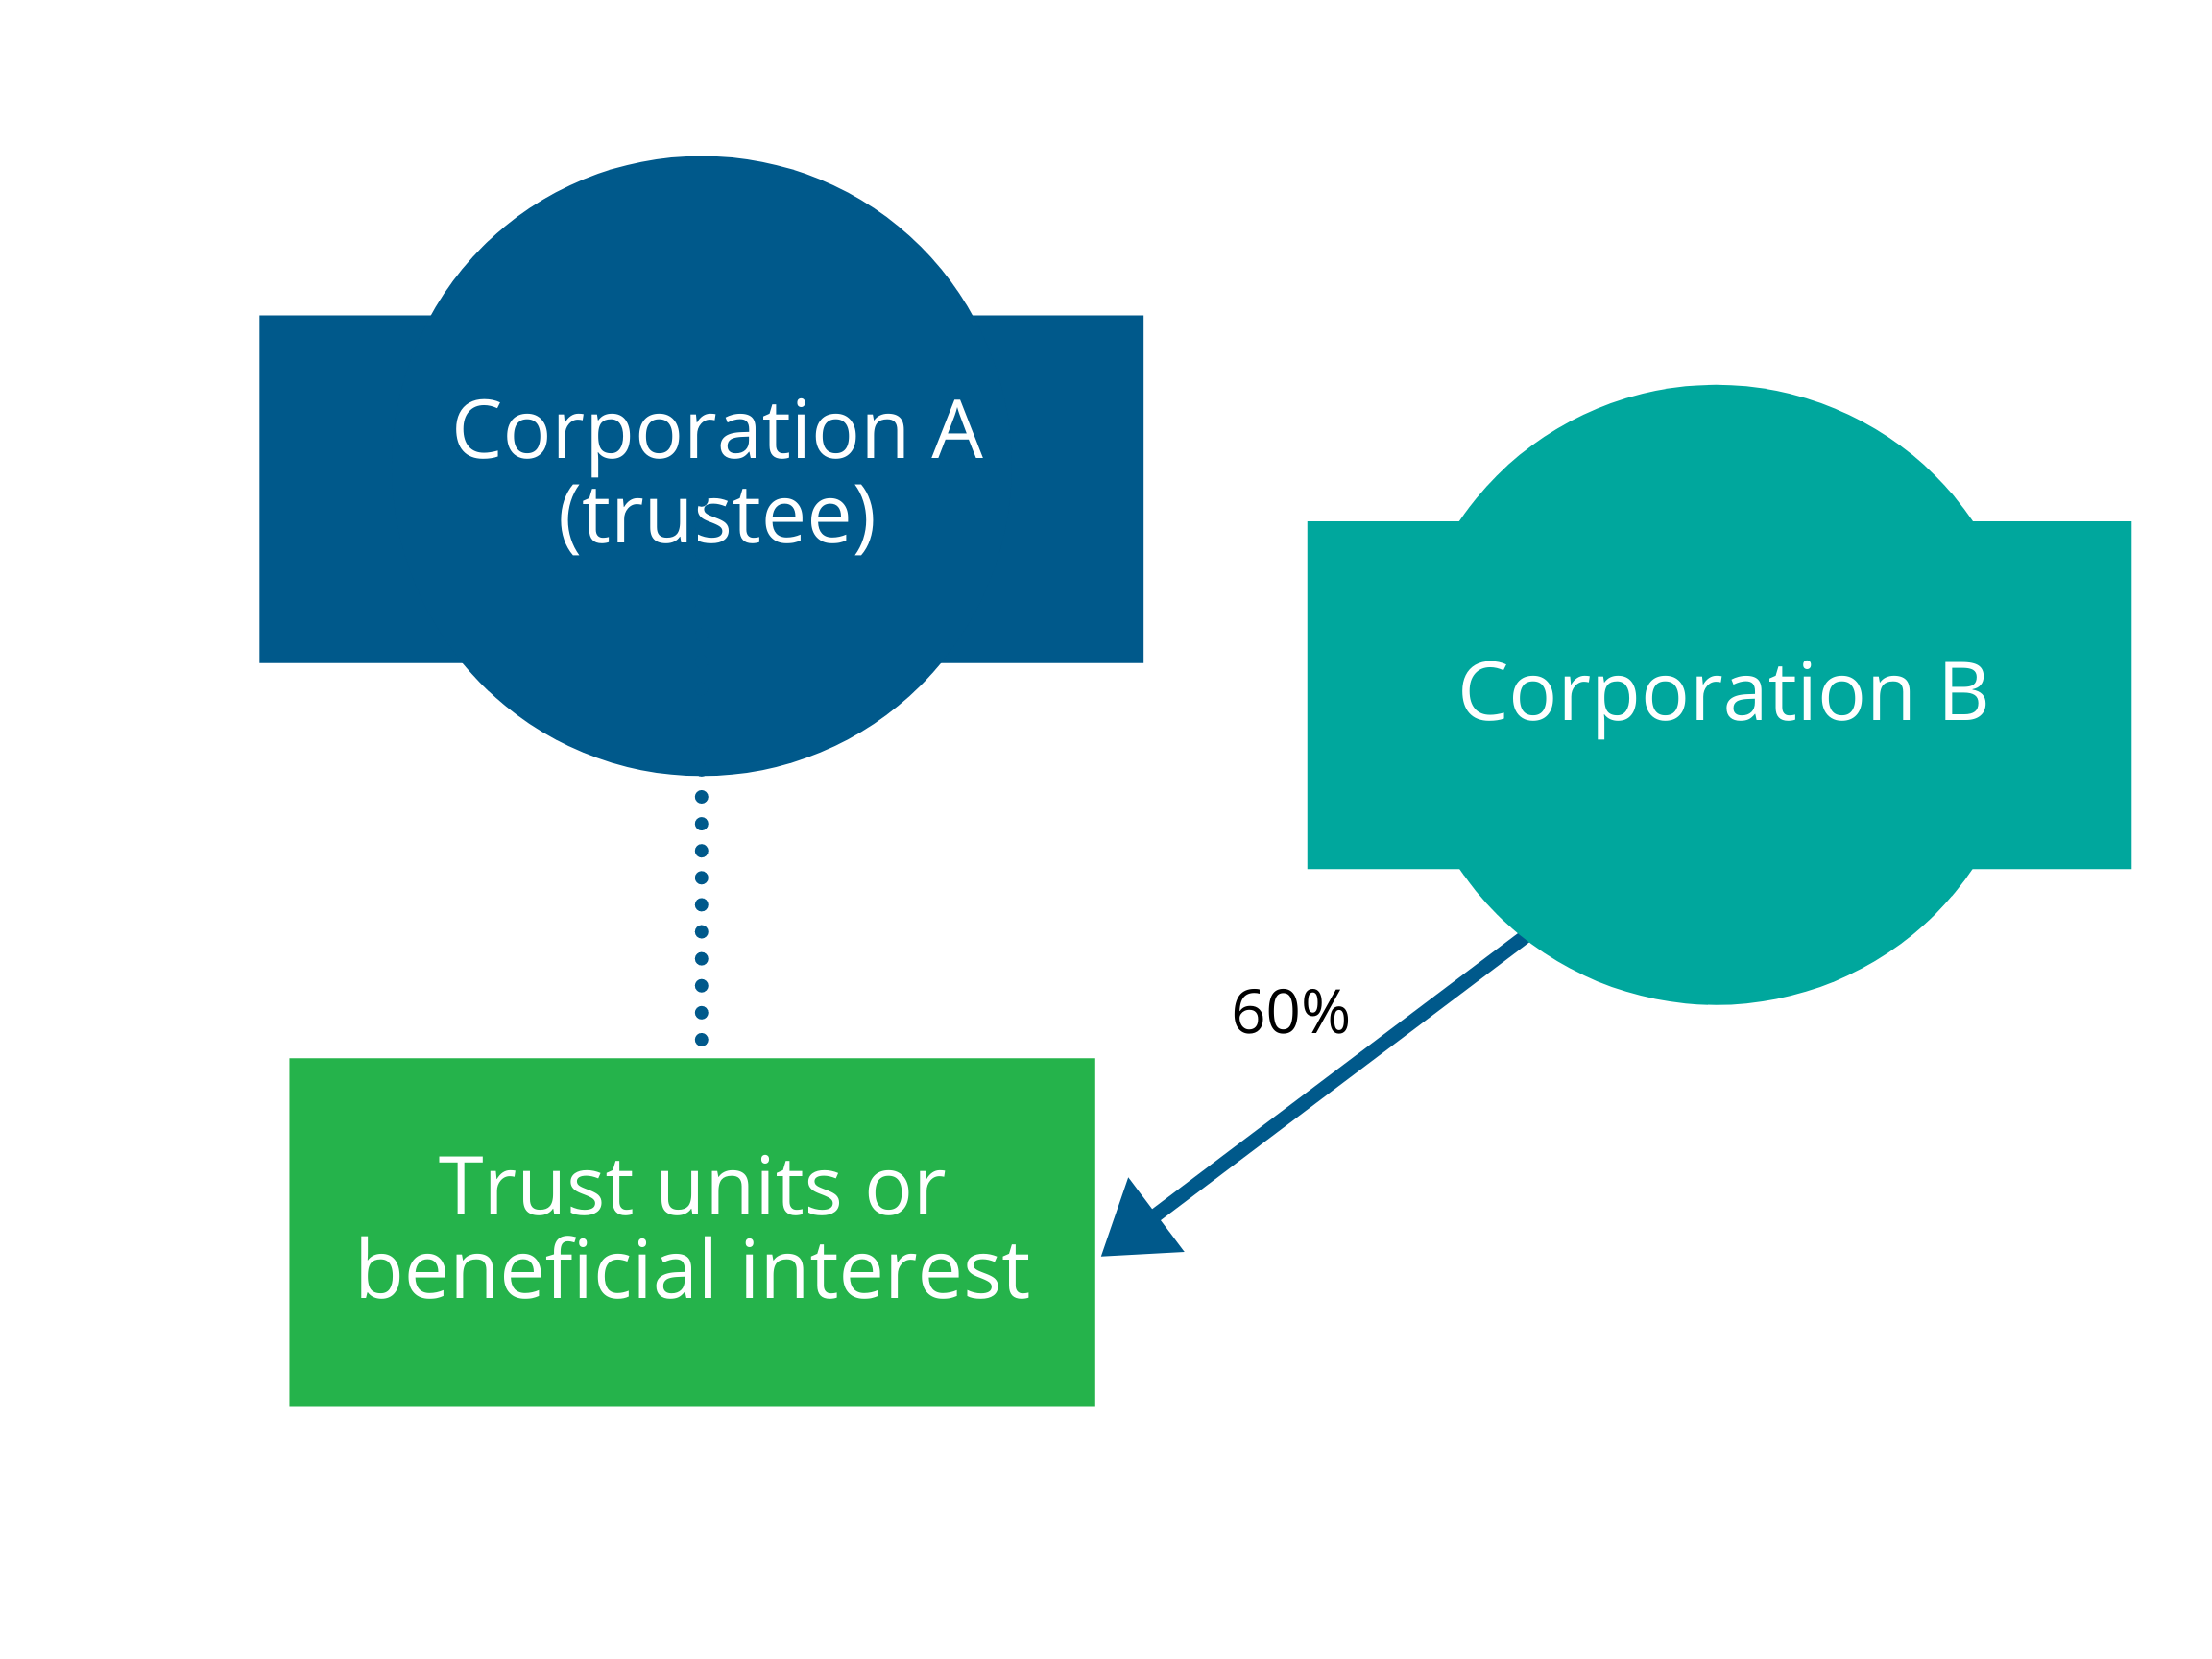 Illustration showing corporation A as trustee and Corporation B holding 60% of the units or beneficial interest in trust